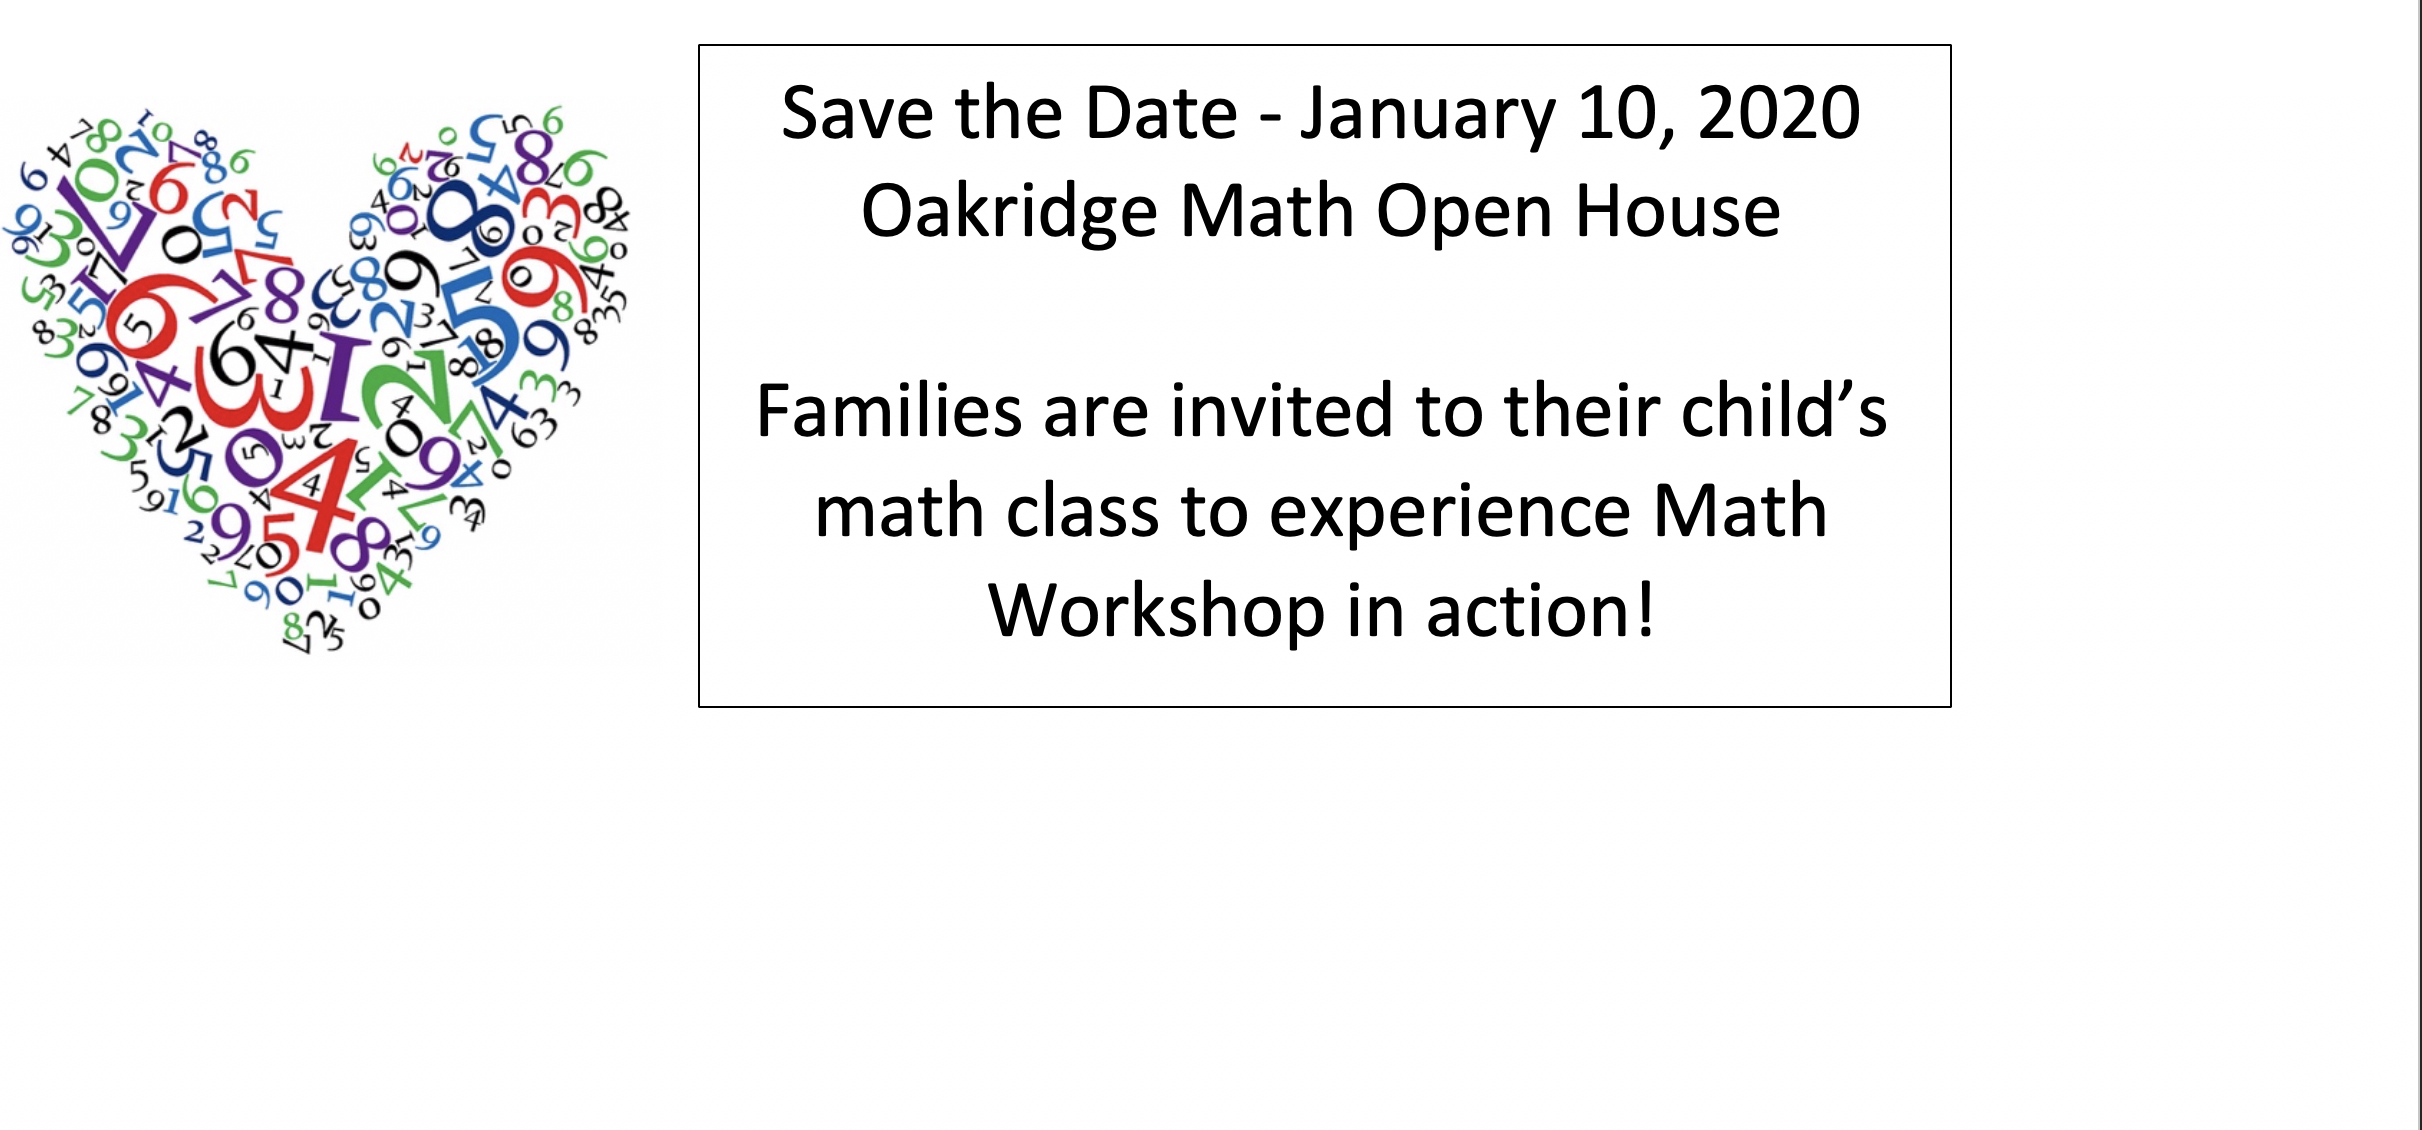 Oakridge Math Open House